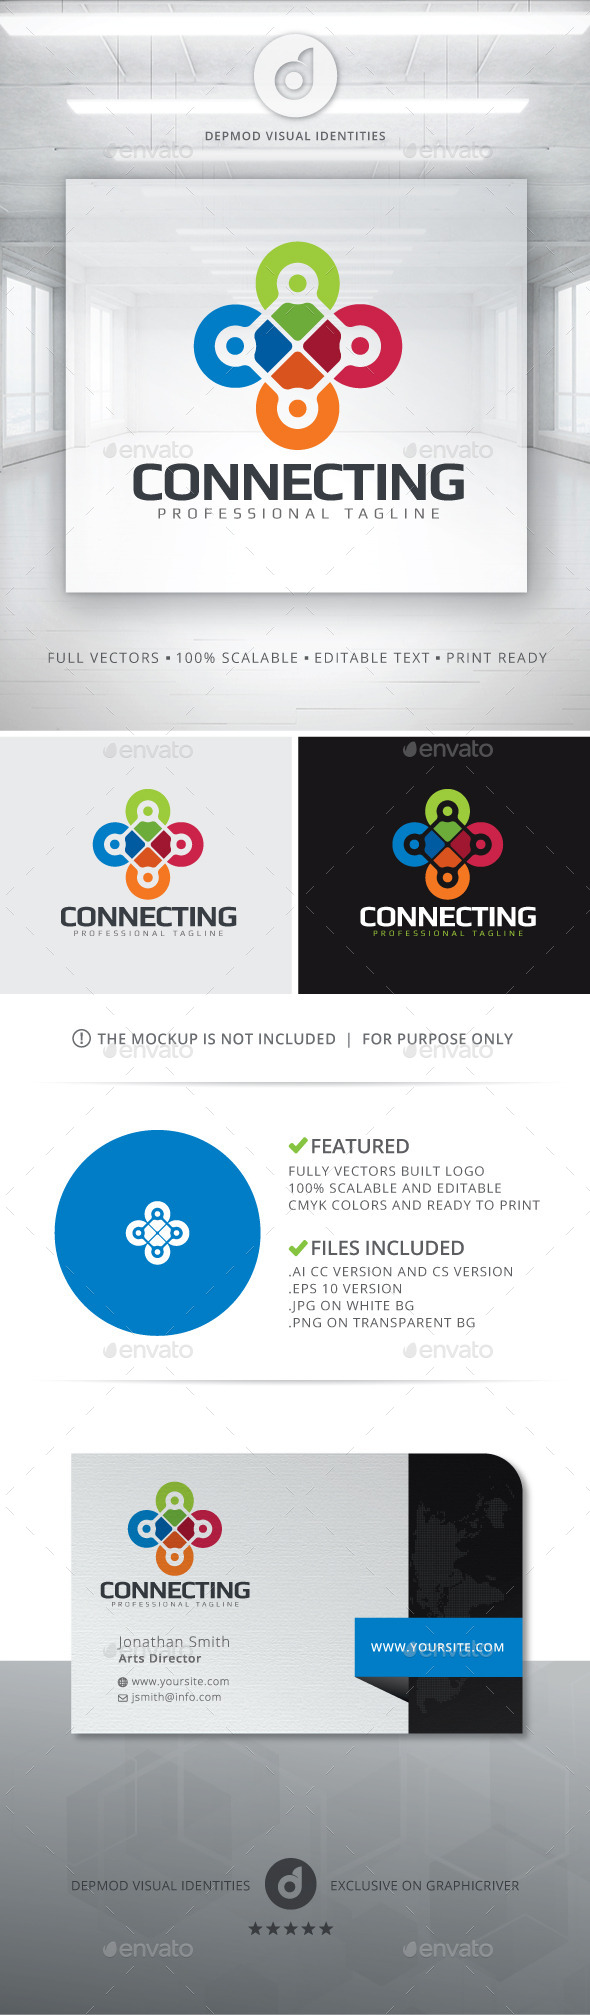 Connecting Logo - Abstract Logo Templates